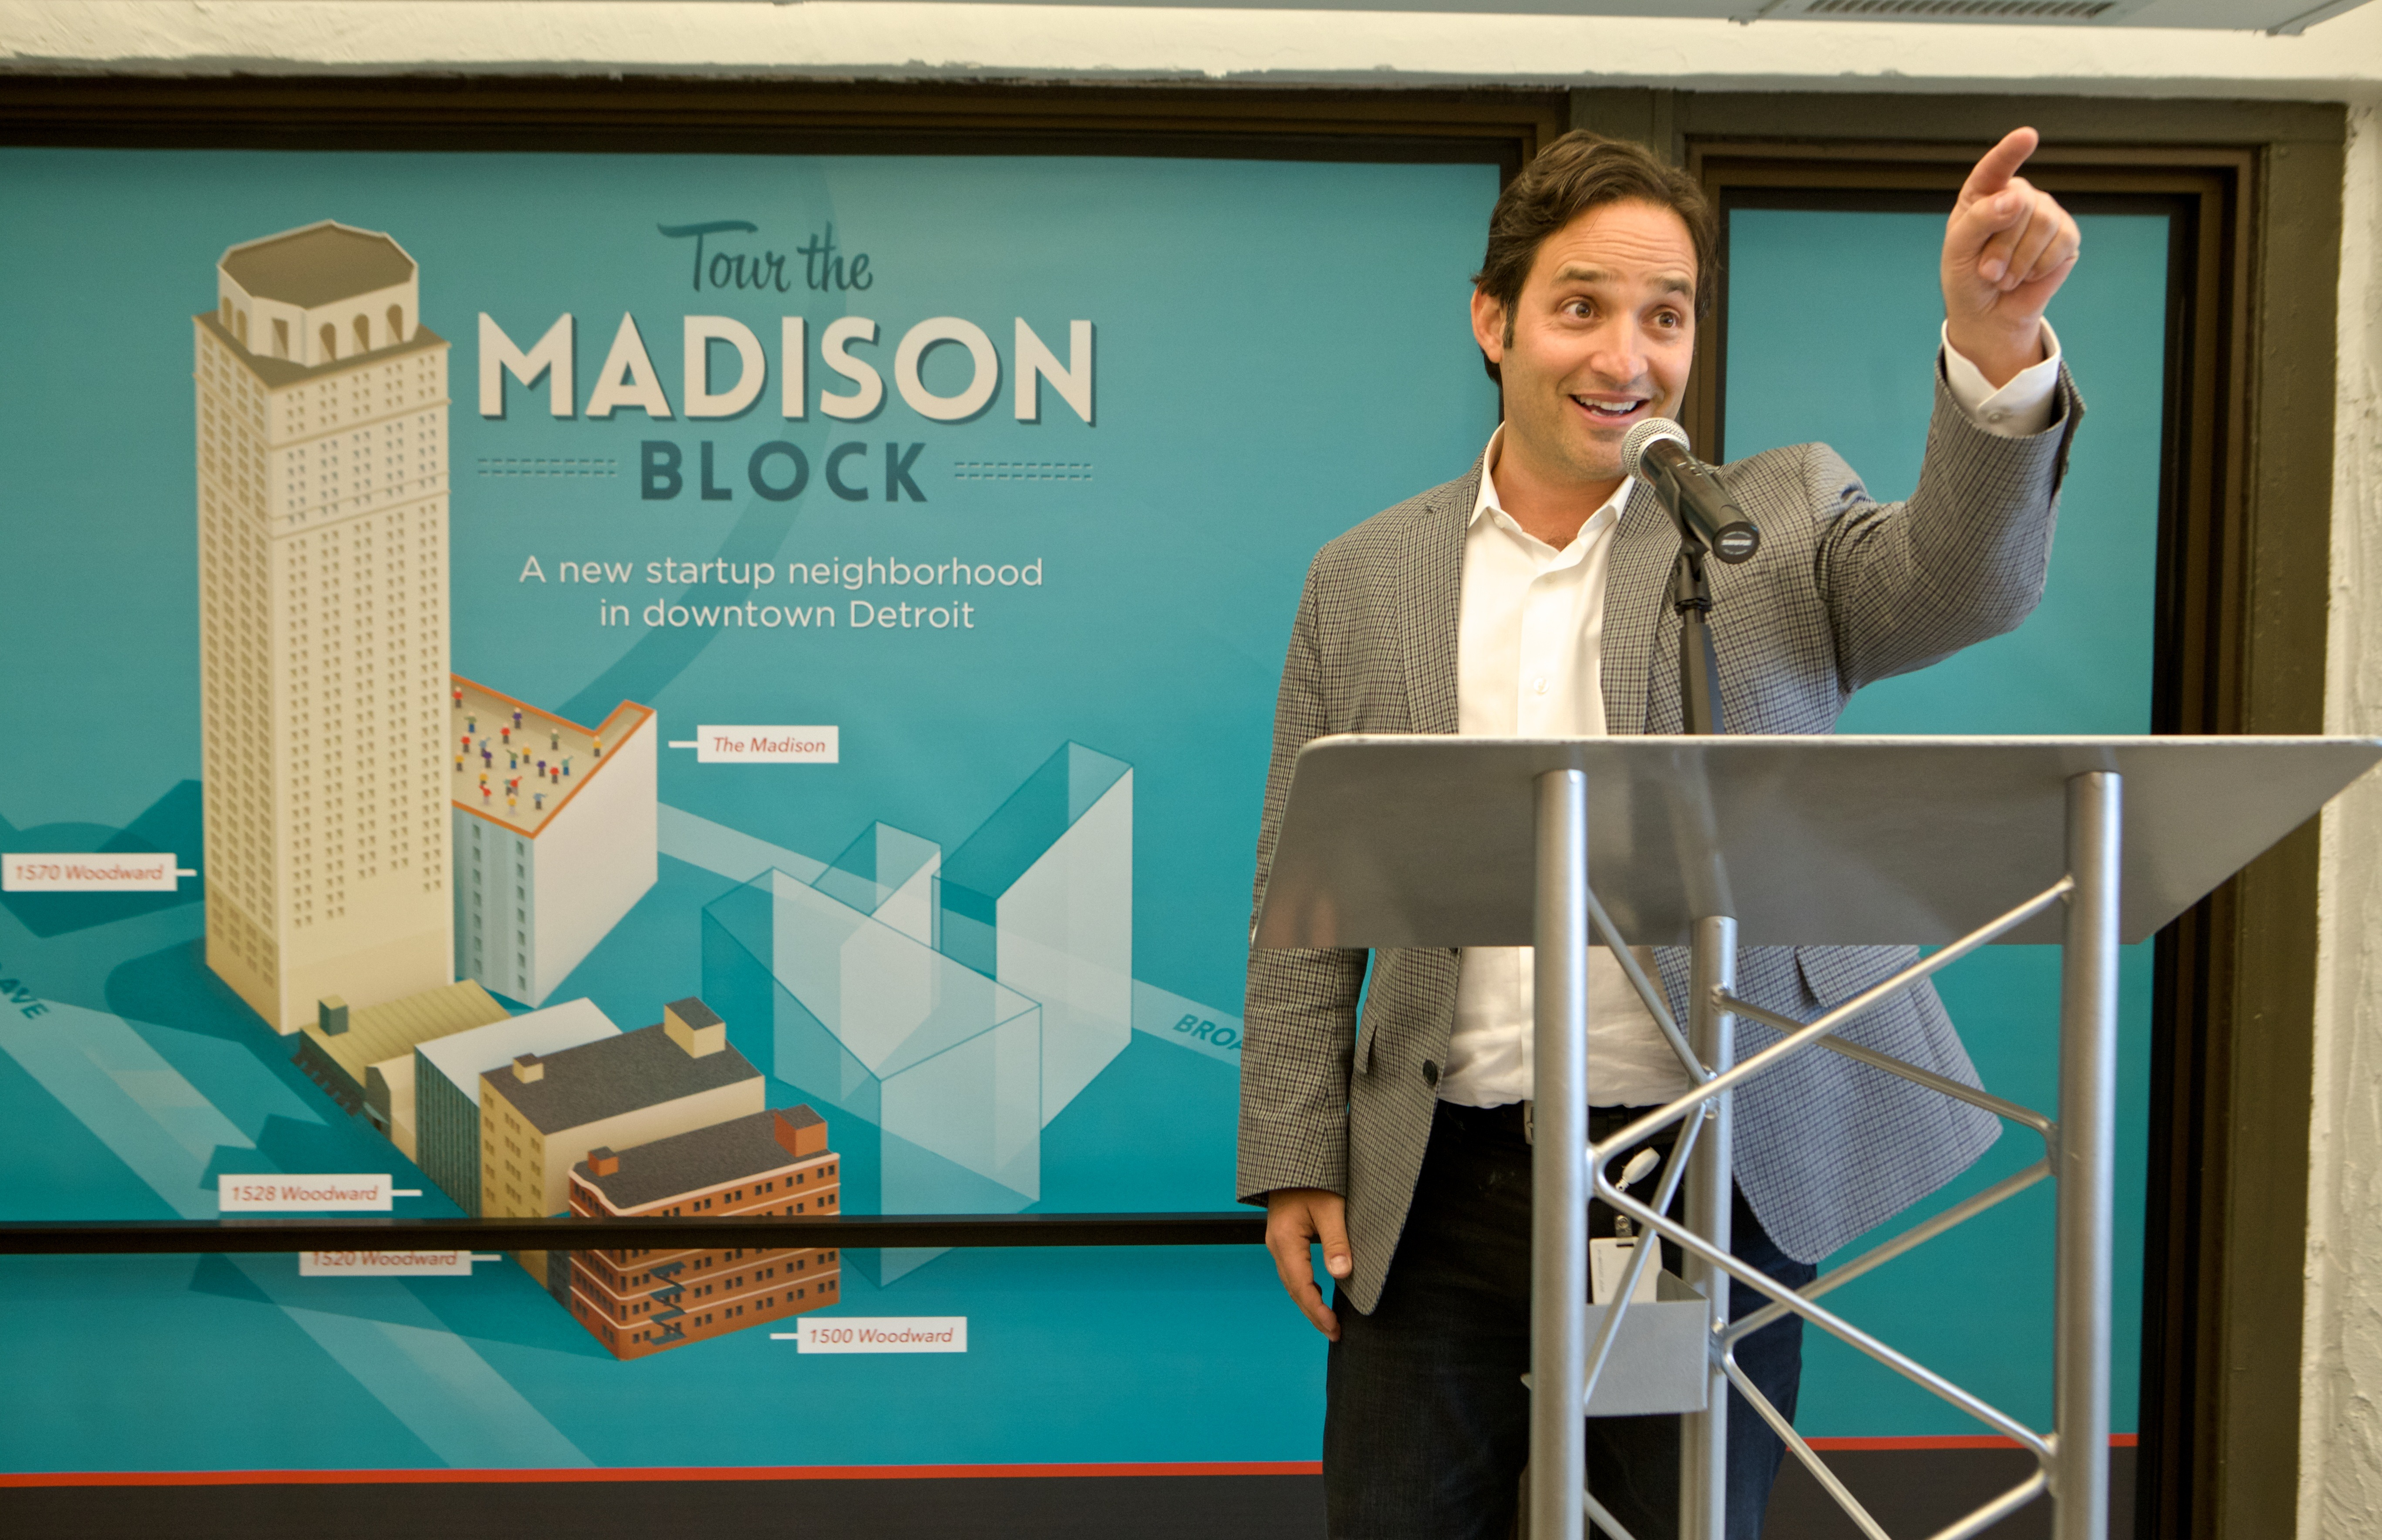 Grand Circus and Google Featured in the Unveiling of The M@dison Block - Quicken Loans Zing Blog